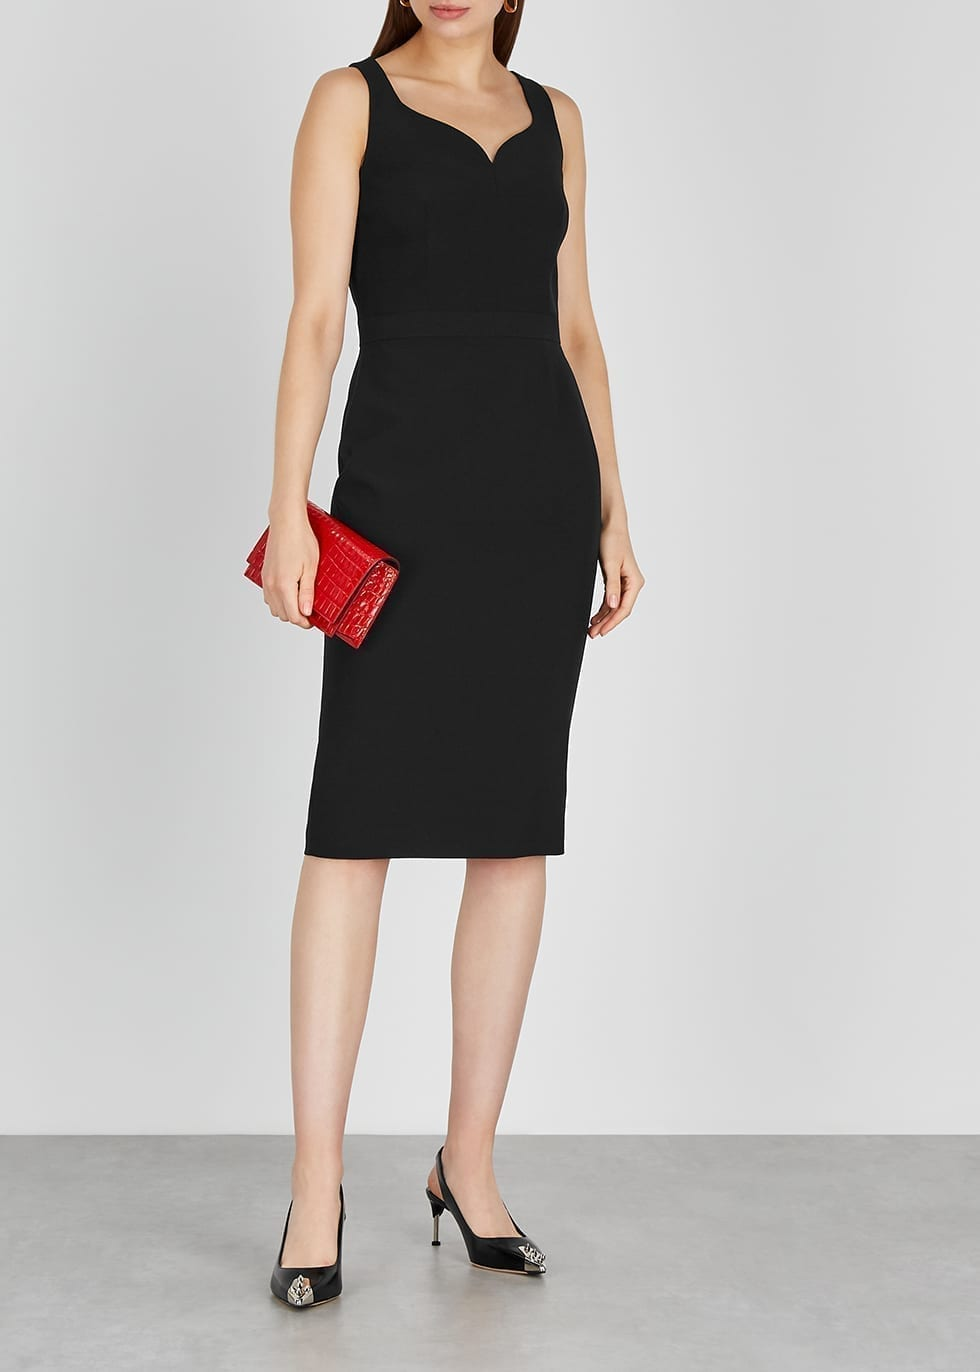 ALEXANDER MCQUEEN Black Midi Dress